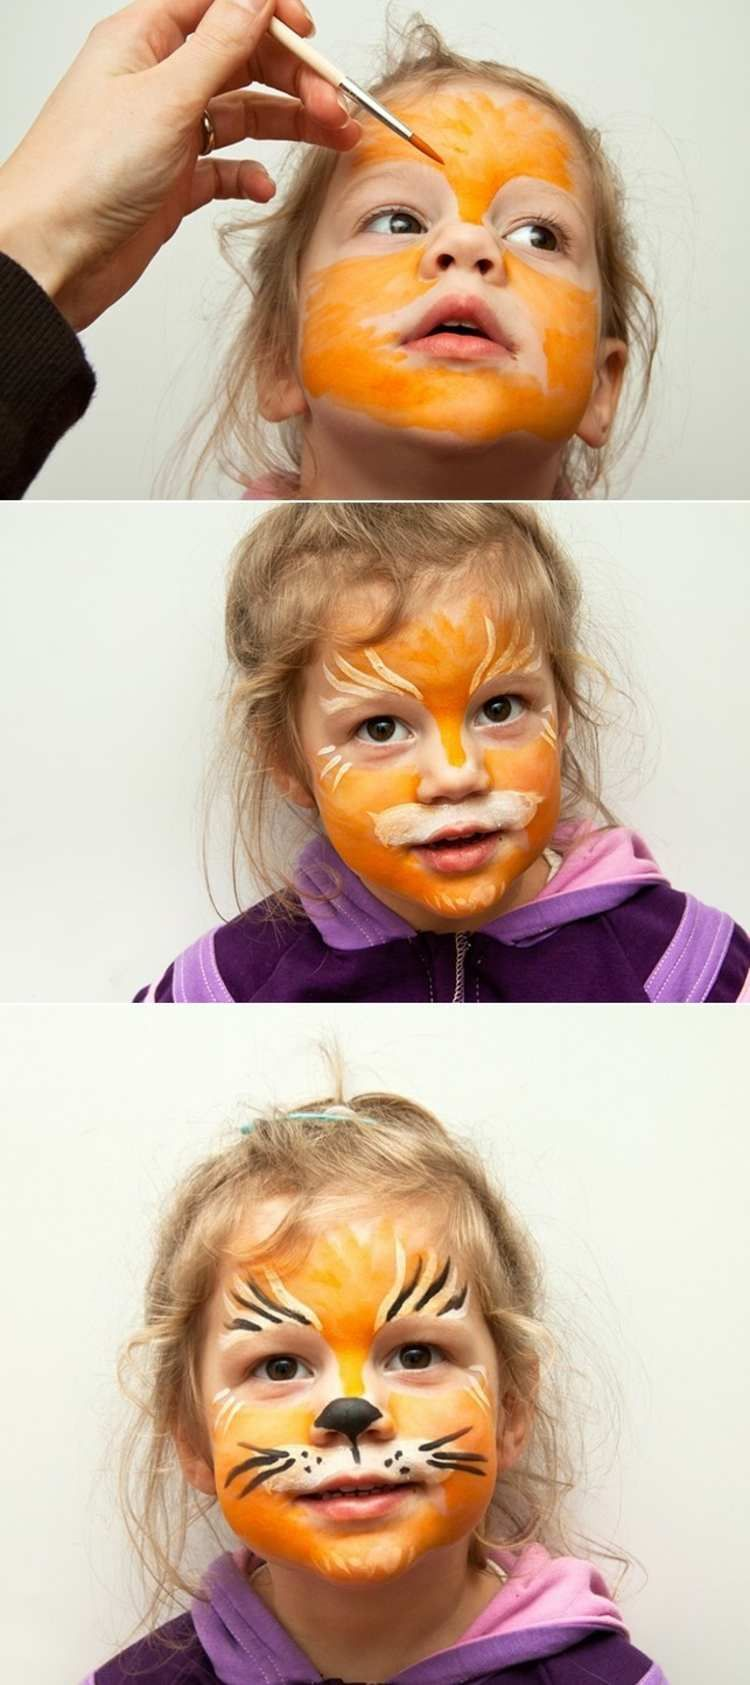 Halloween kids makeup - ideas for your little monsters - new -  Halloween kids makeup – ideas for your little monsters #witch #zombie #paintpainting #carnival #h - #Halloween #ideas #kids #makeup #monsters #naturalmakeupdiy #nomakeup #nomakeupmakeup #weddingmakeup